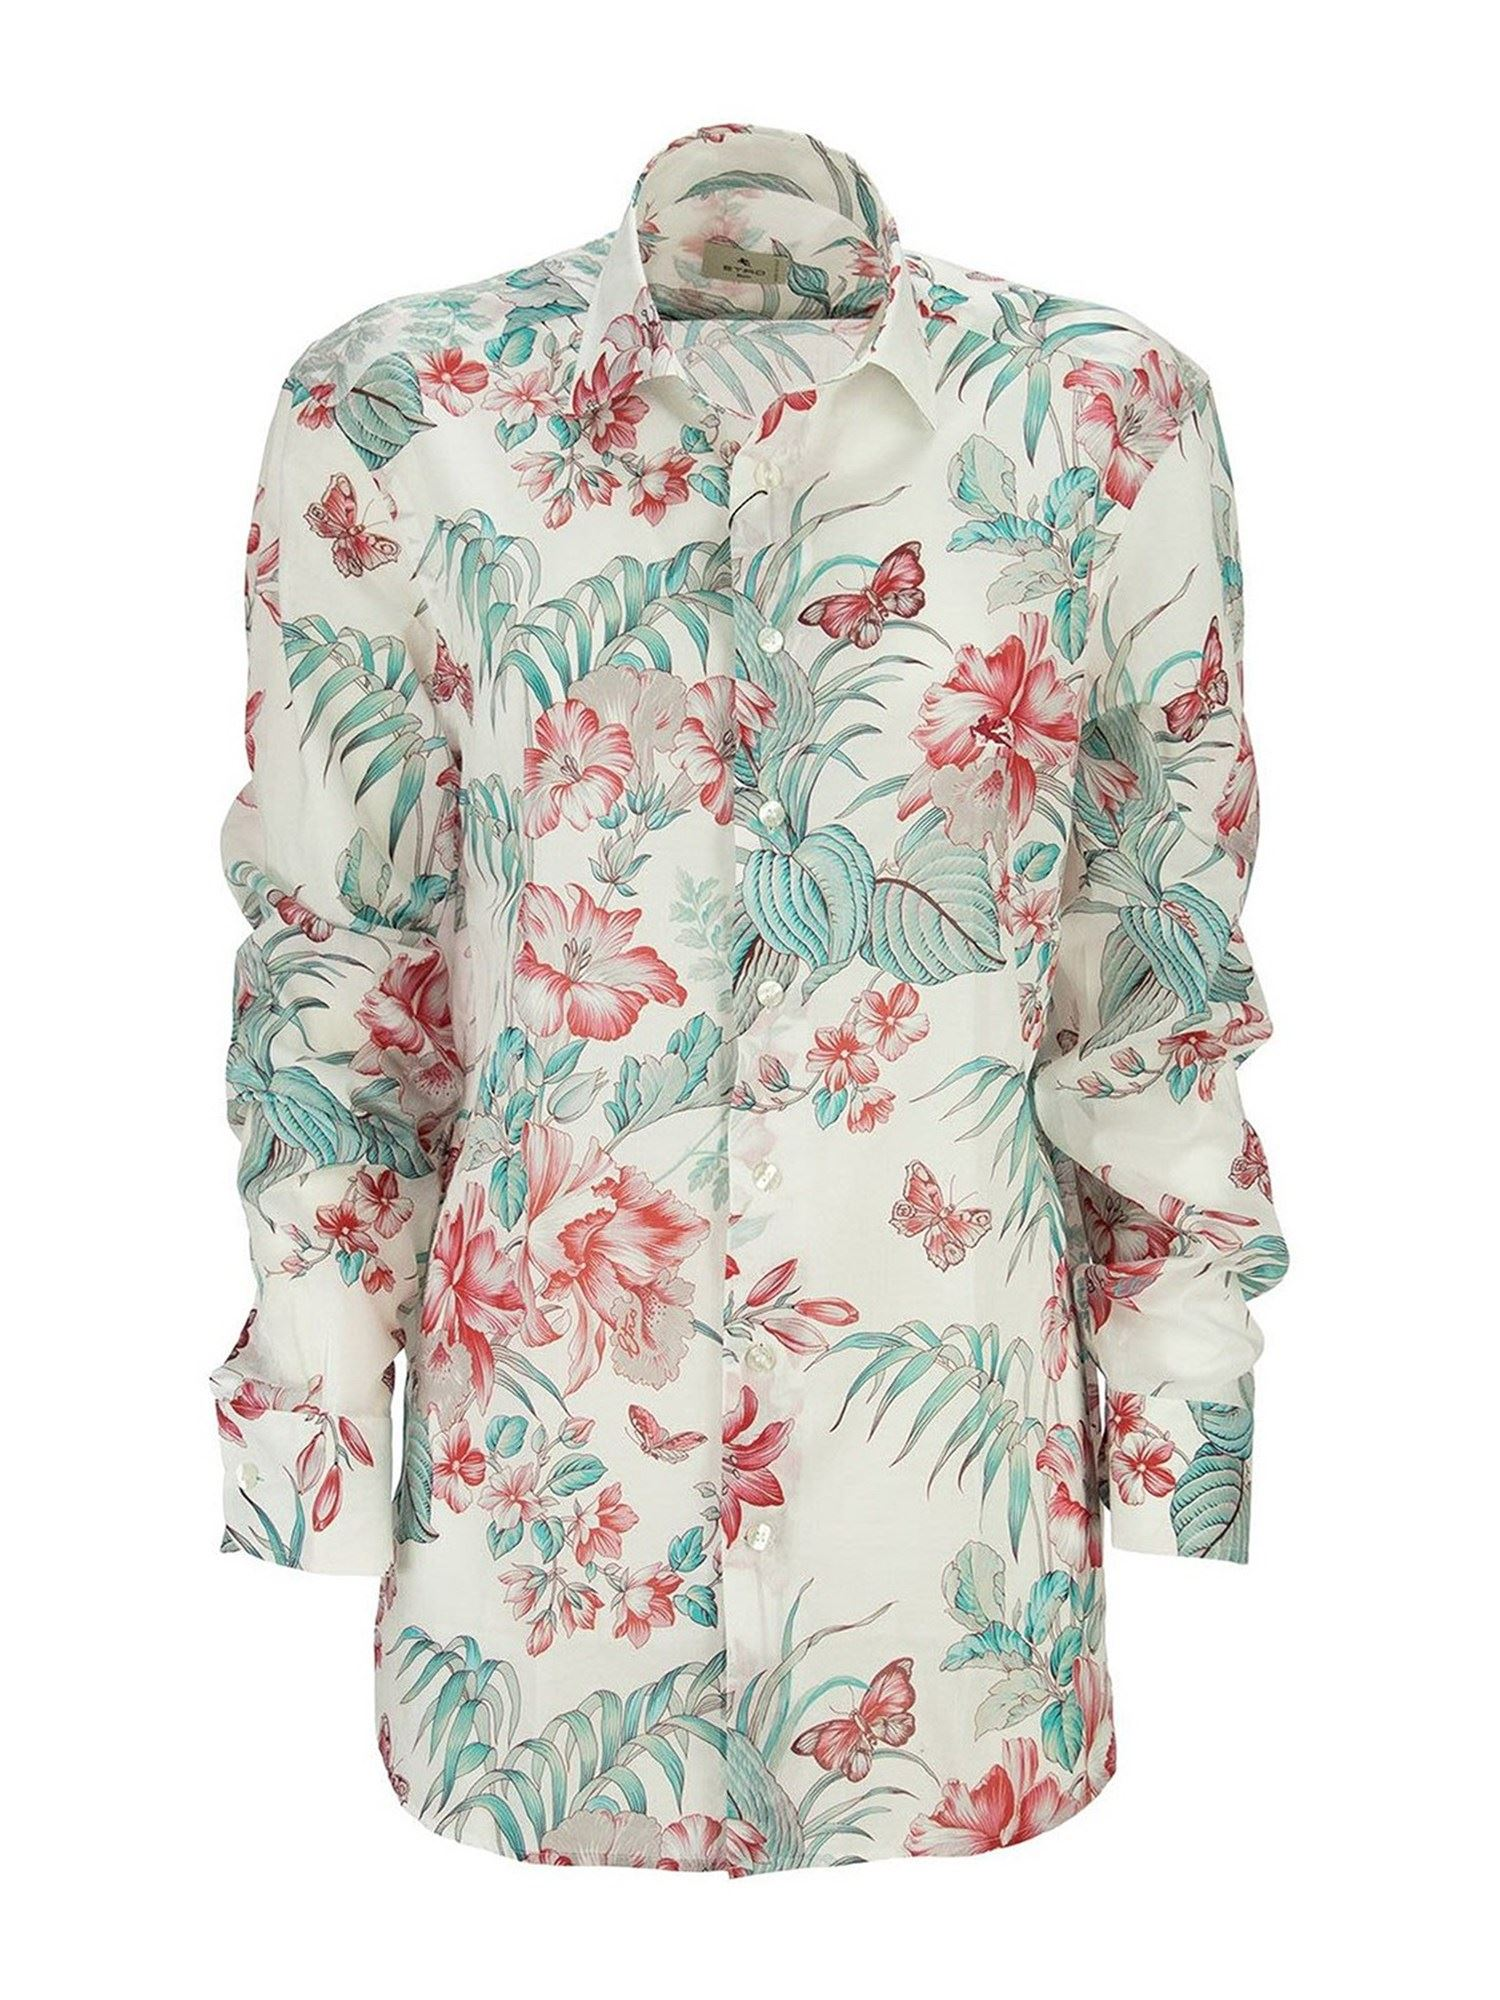 Etro FLORAL PRINTED COTTON MULTICOLOR SHIRT